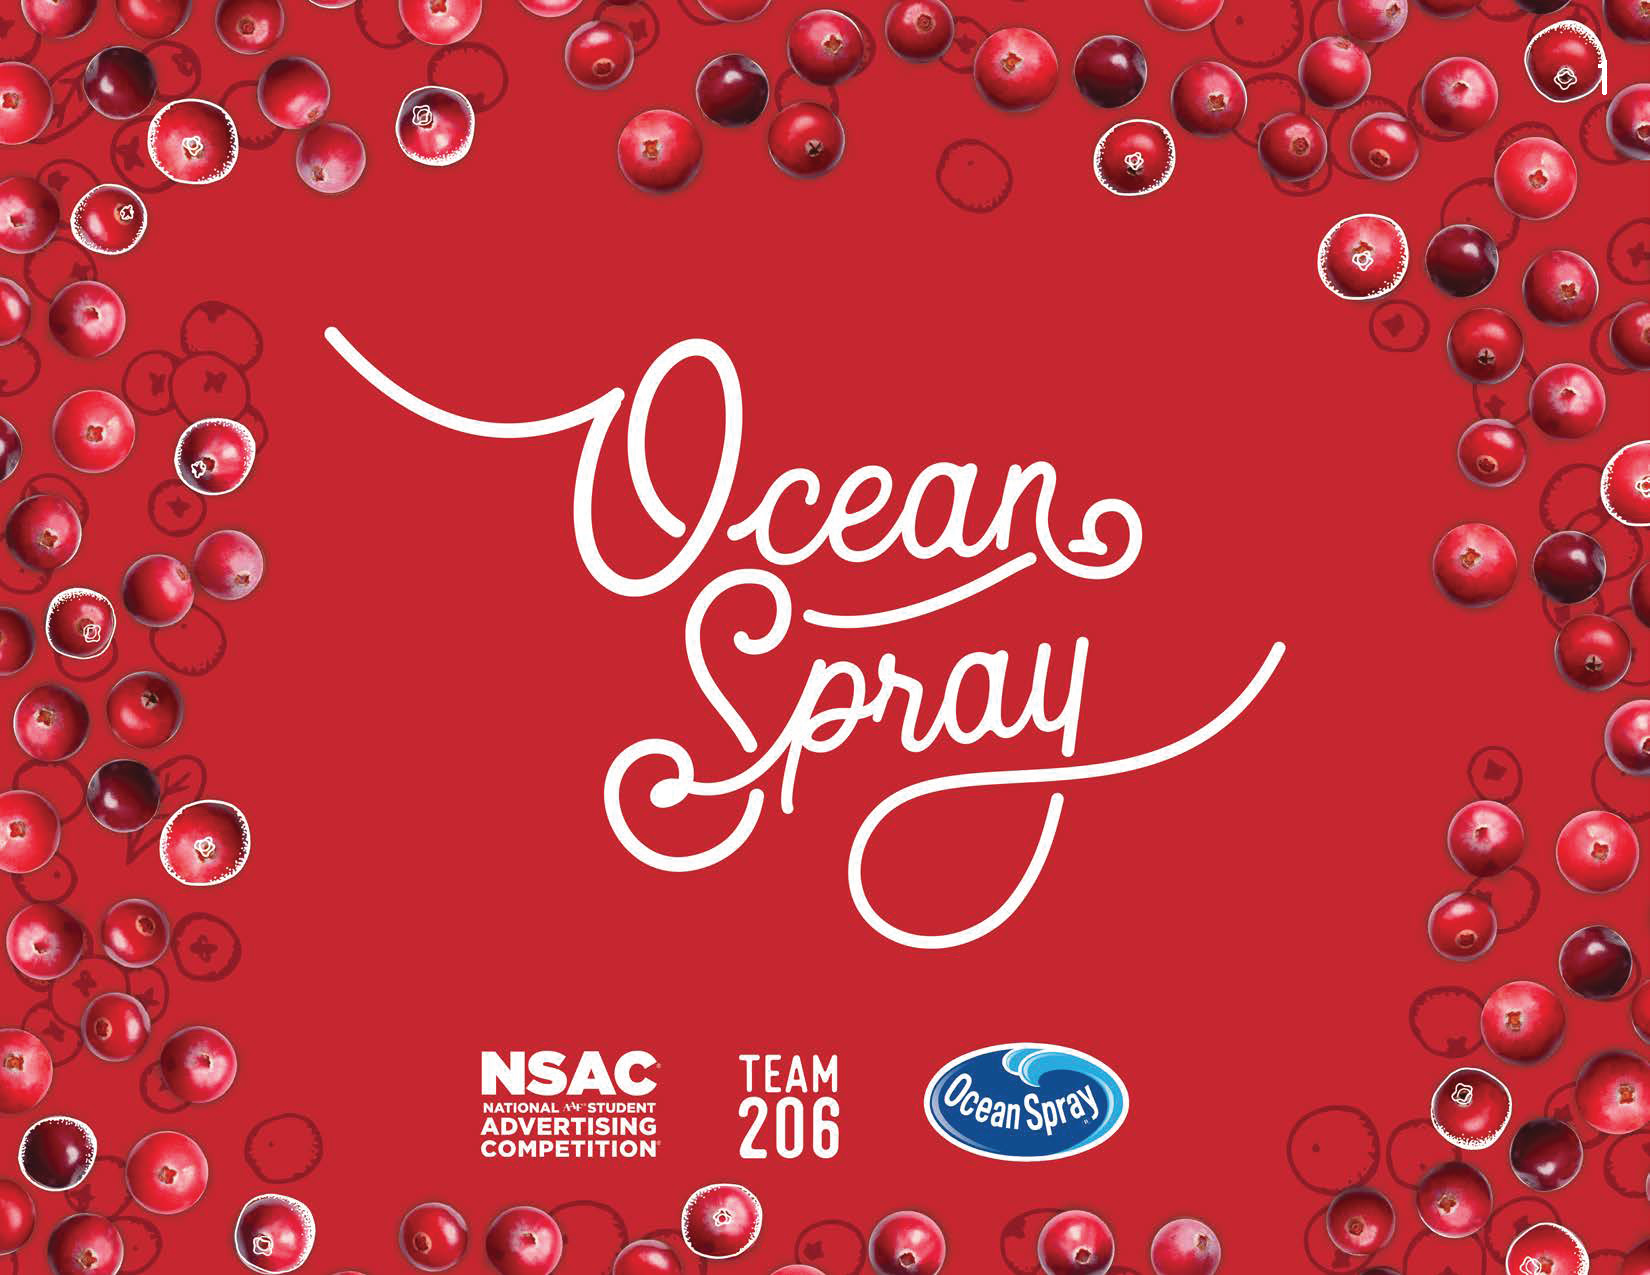 NSAC2018_TEAM206_OceanSpray_FinalPlansBook_Page_01.png